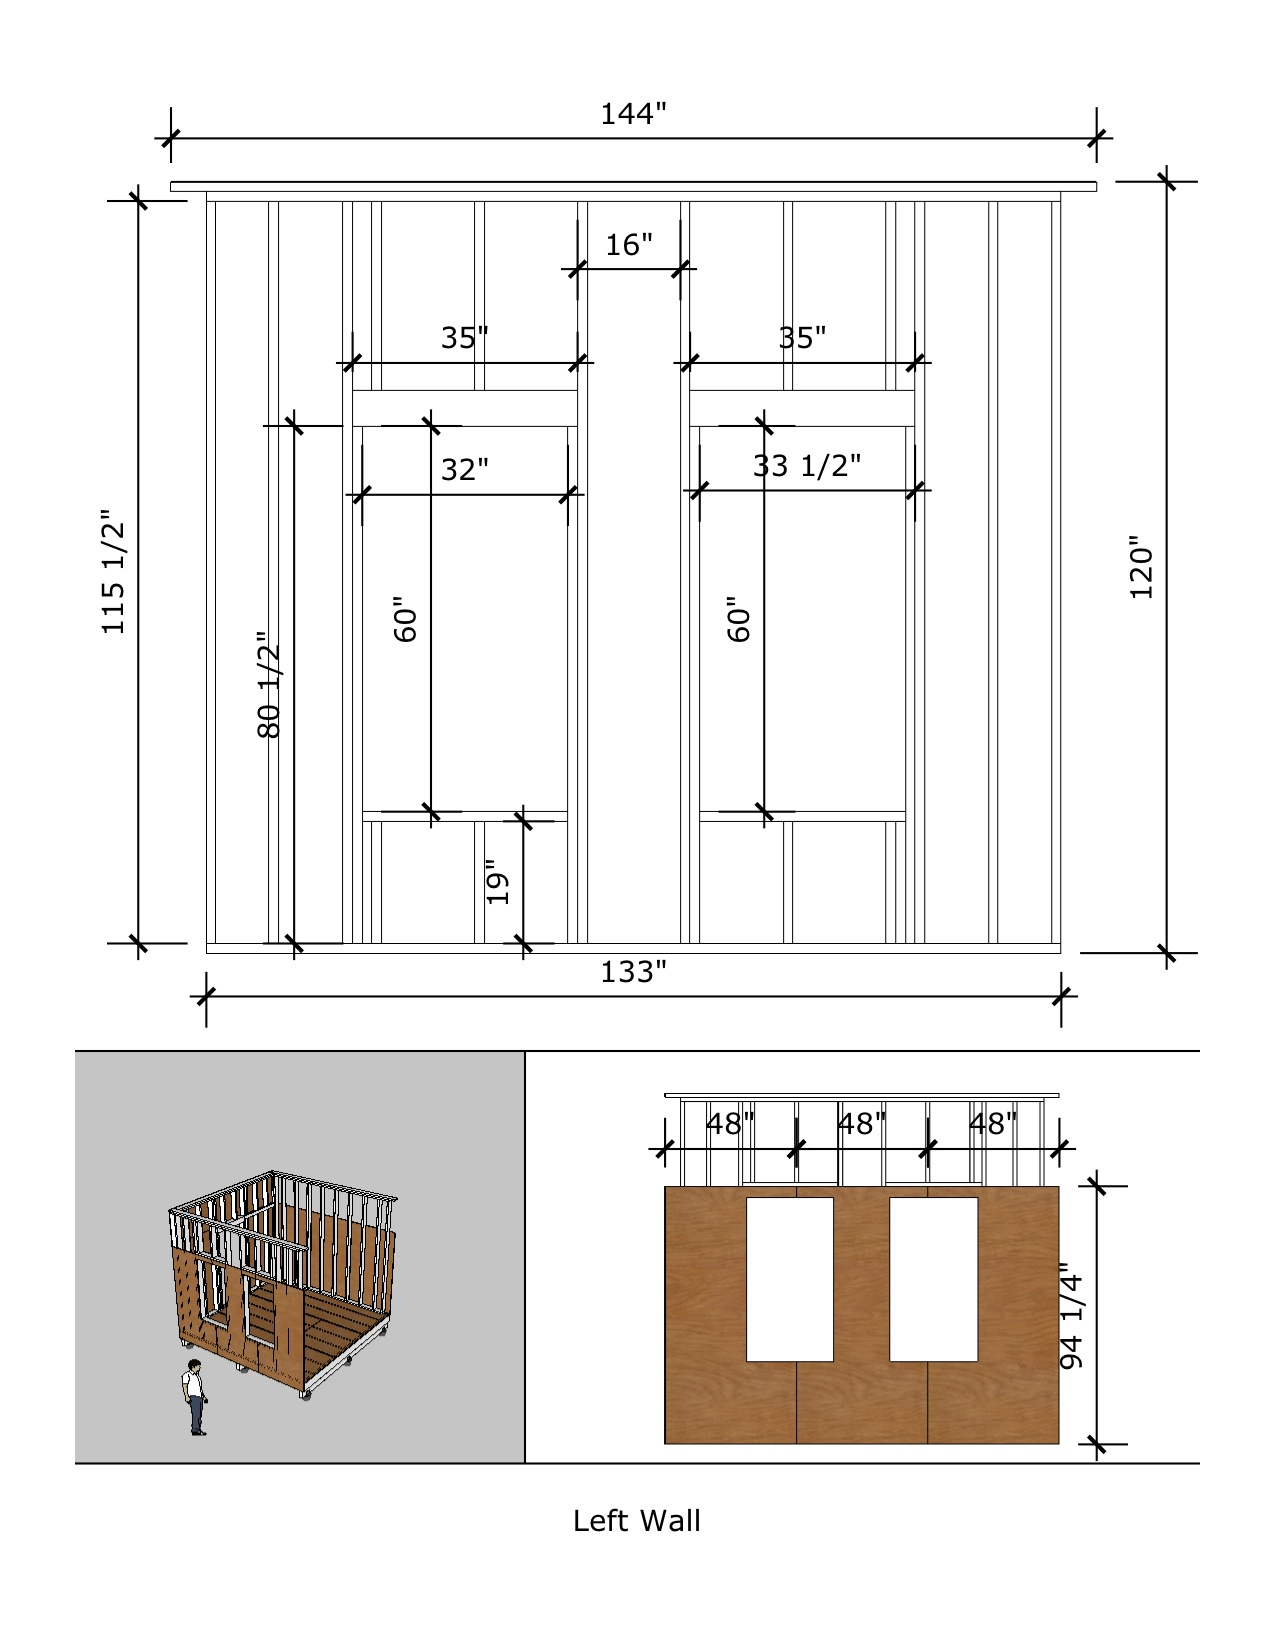 Prospector s cabin 12 x12 for 12x12 room layout